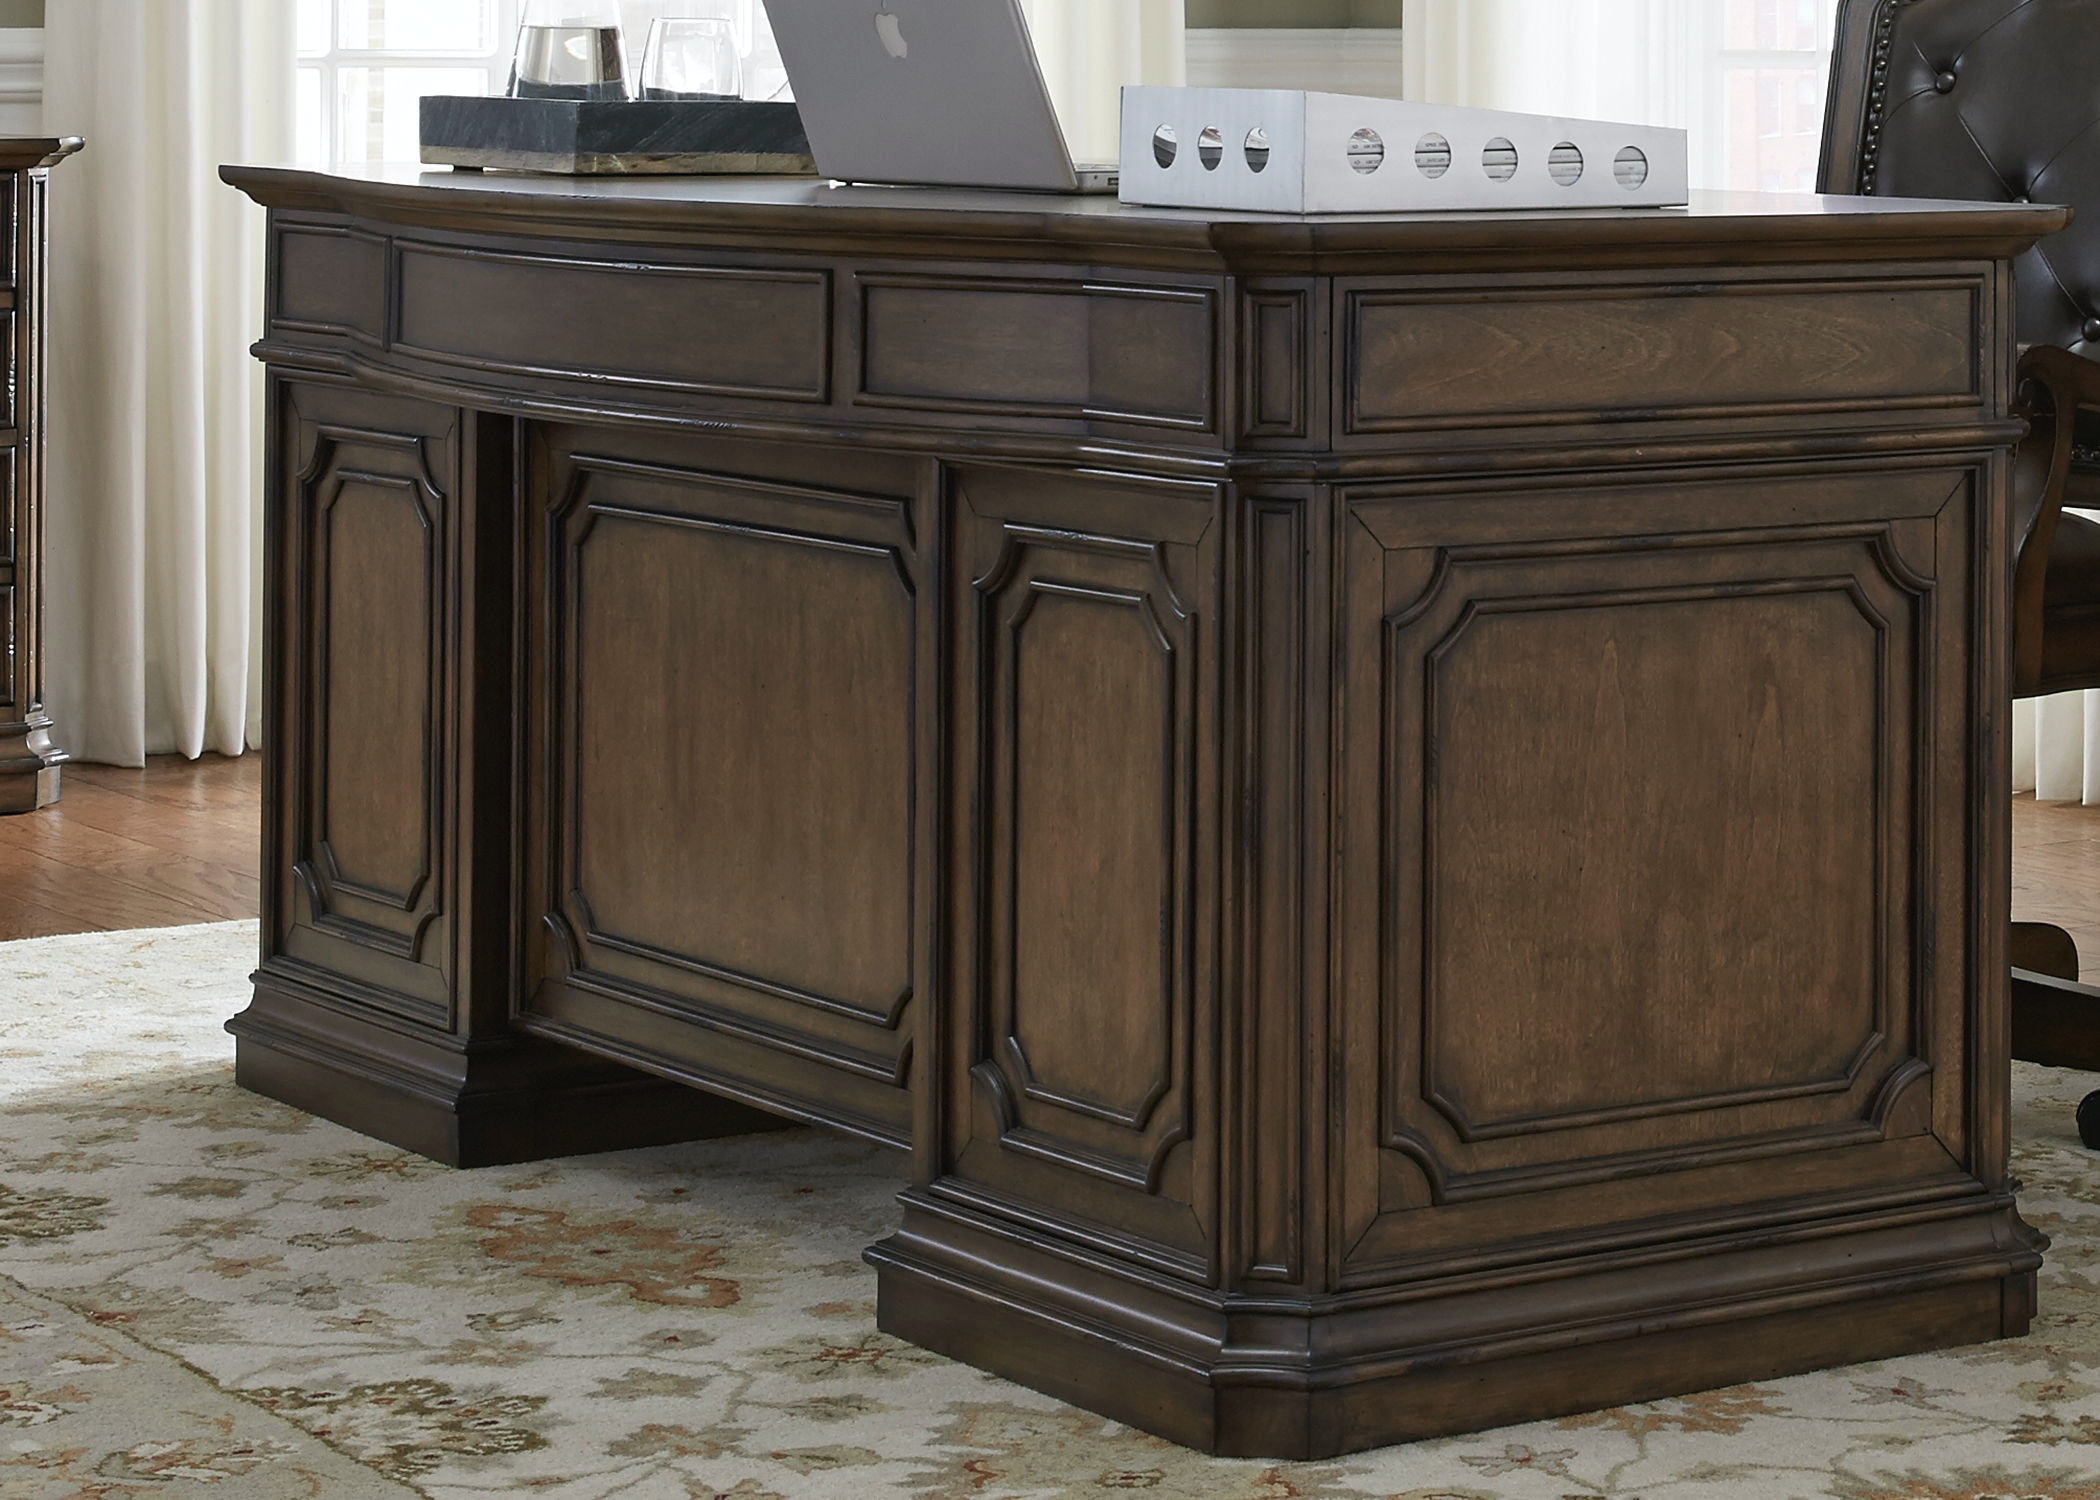 Charming Liberty Furniture Home Office Jr. Executive Desk Base 487 HO105B At Andrews  Furniture